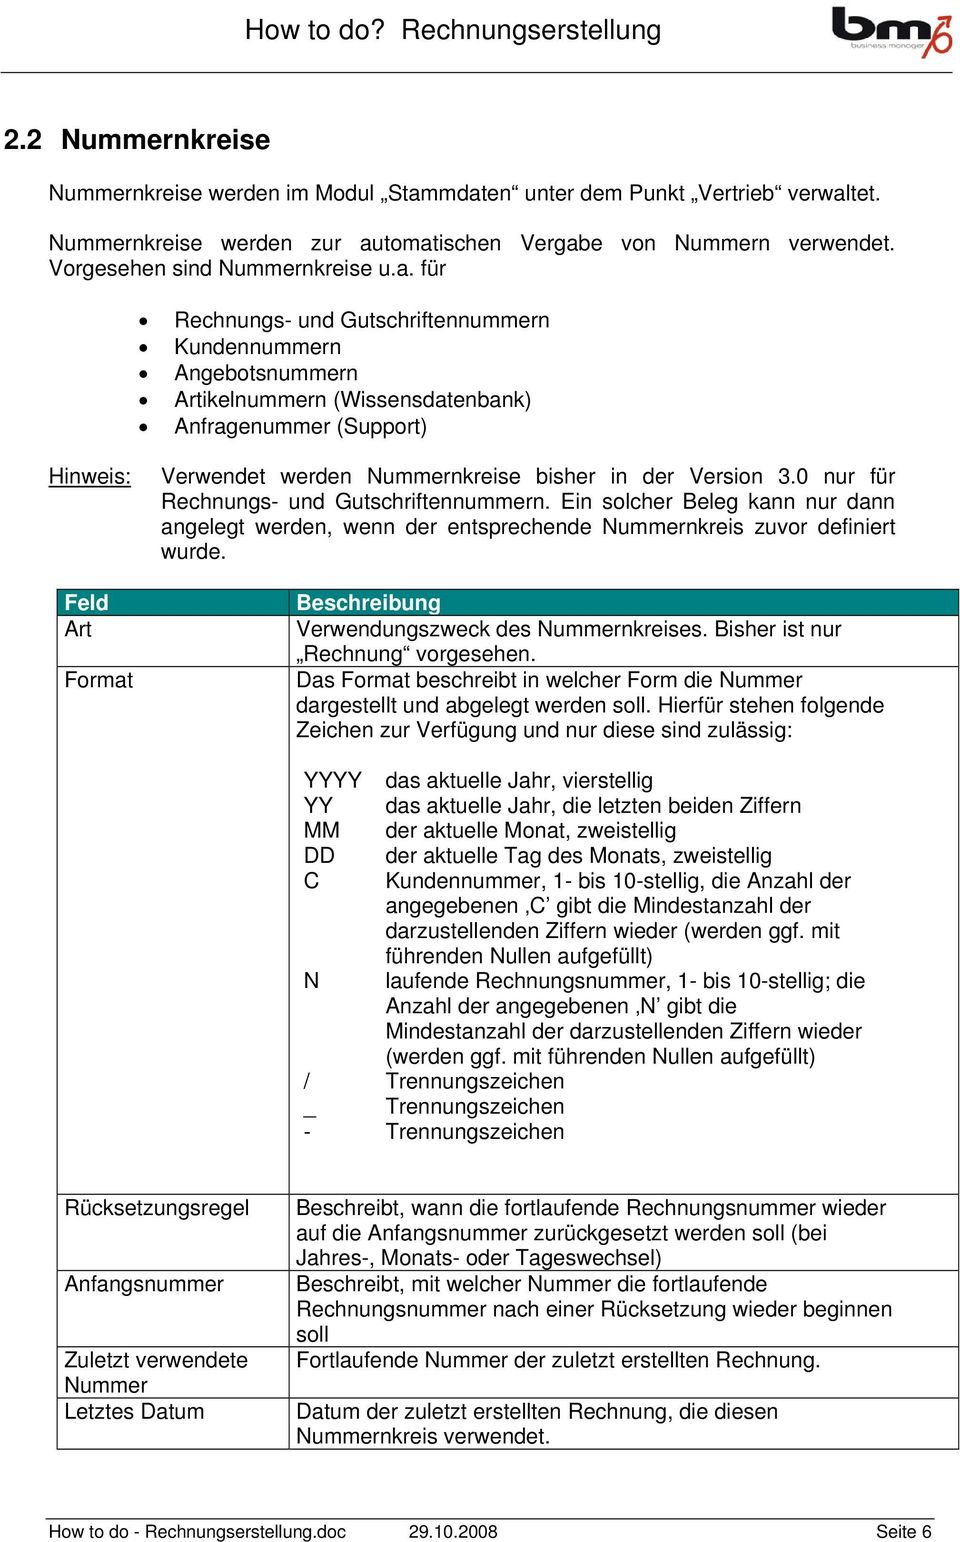 How To Do Rechnungserstellung Pdf